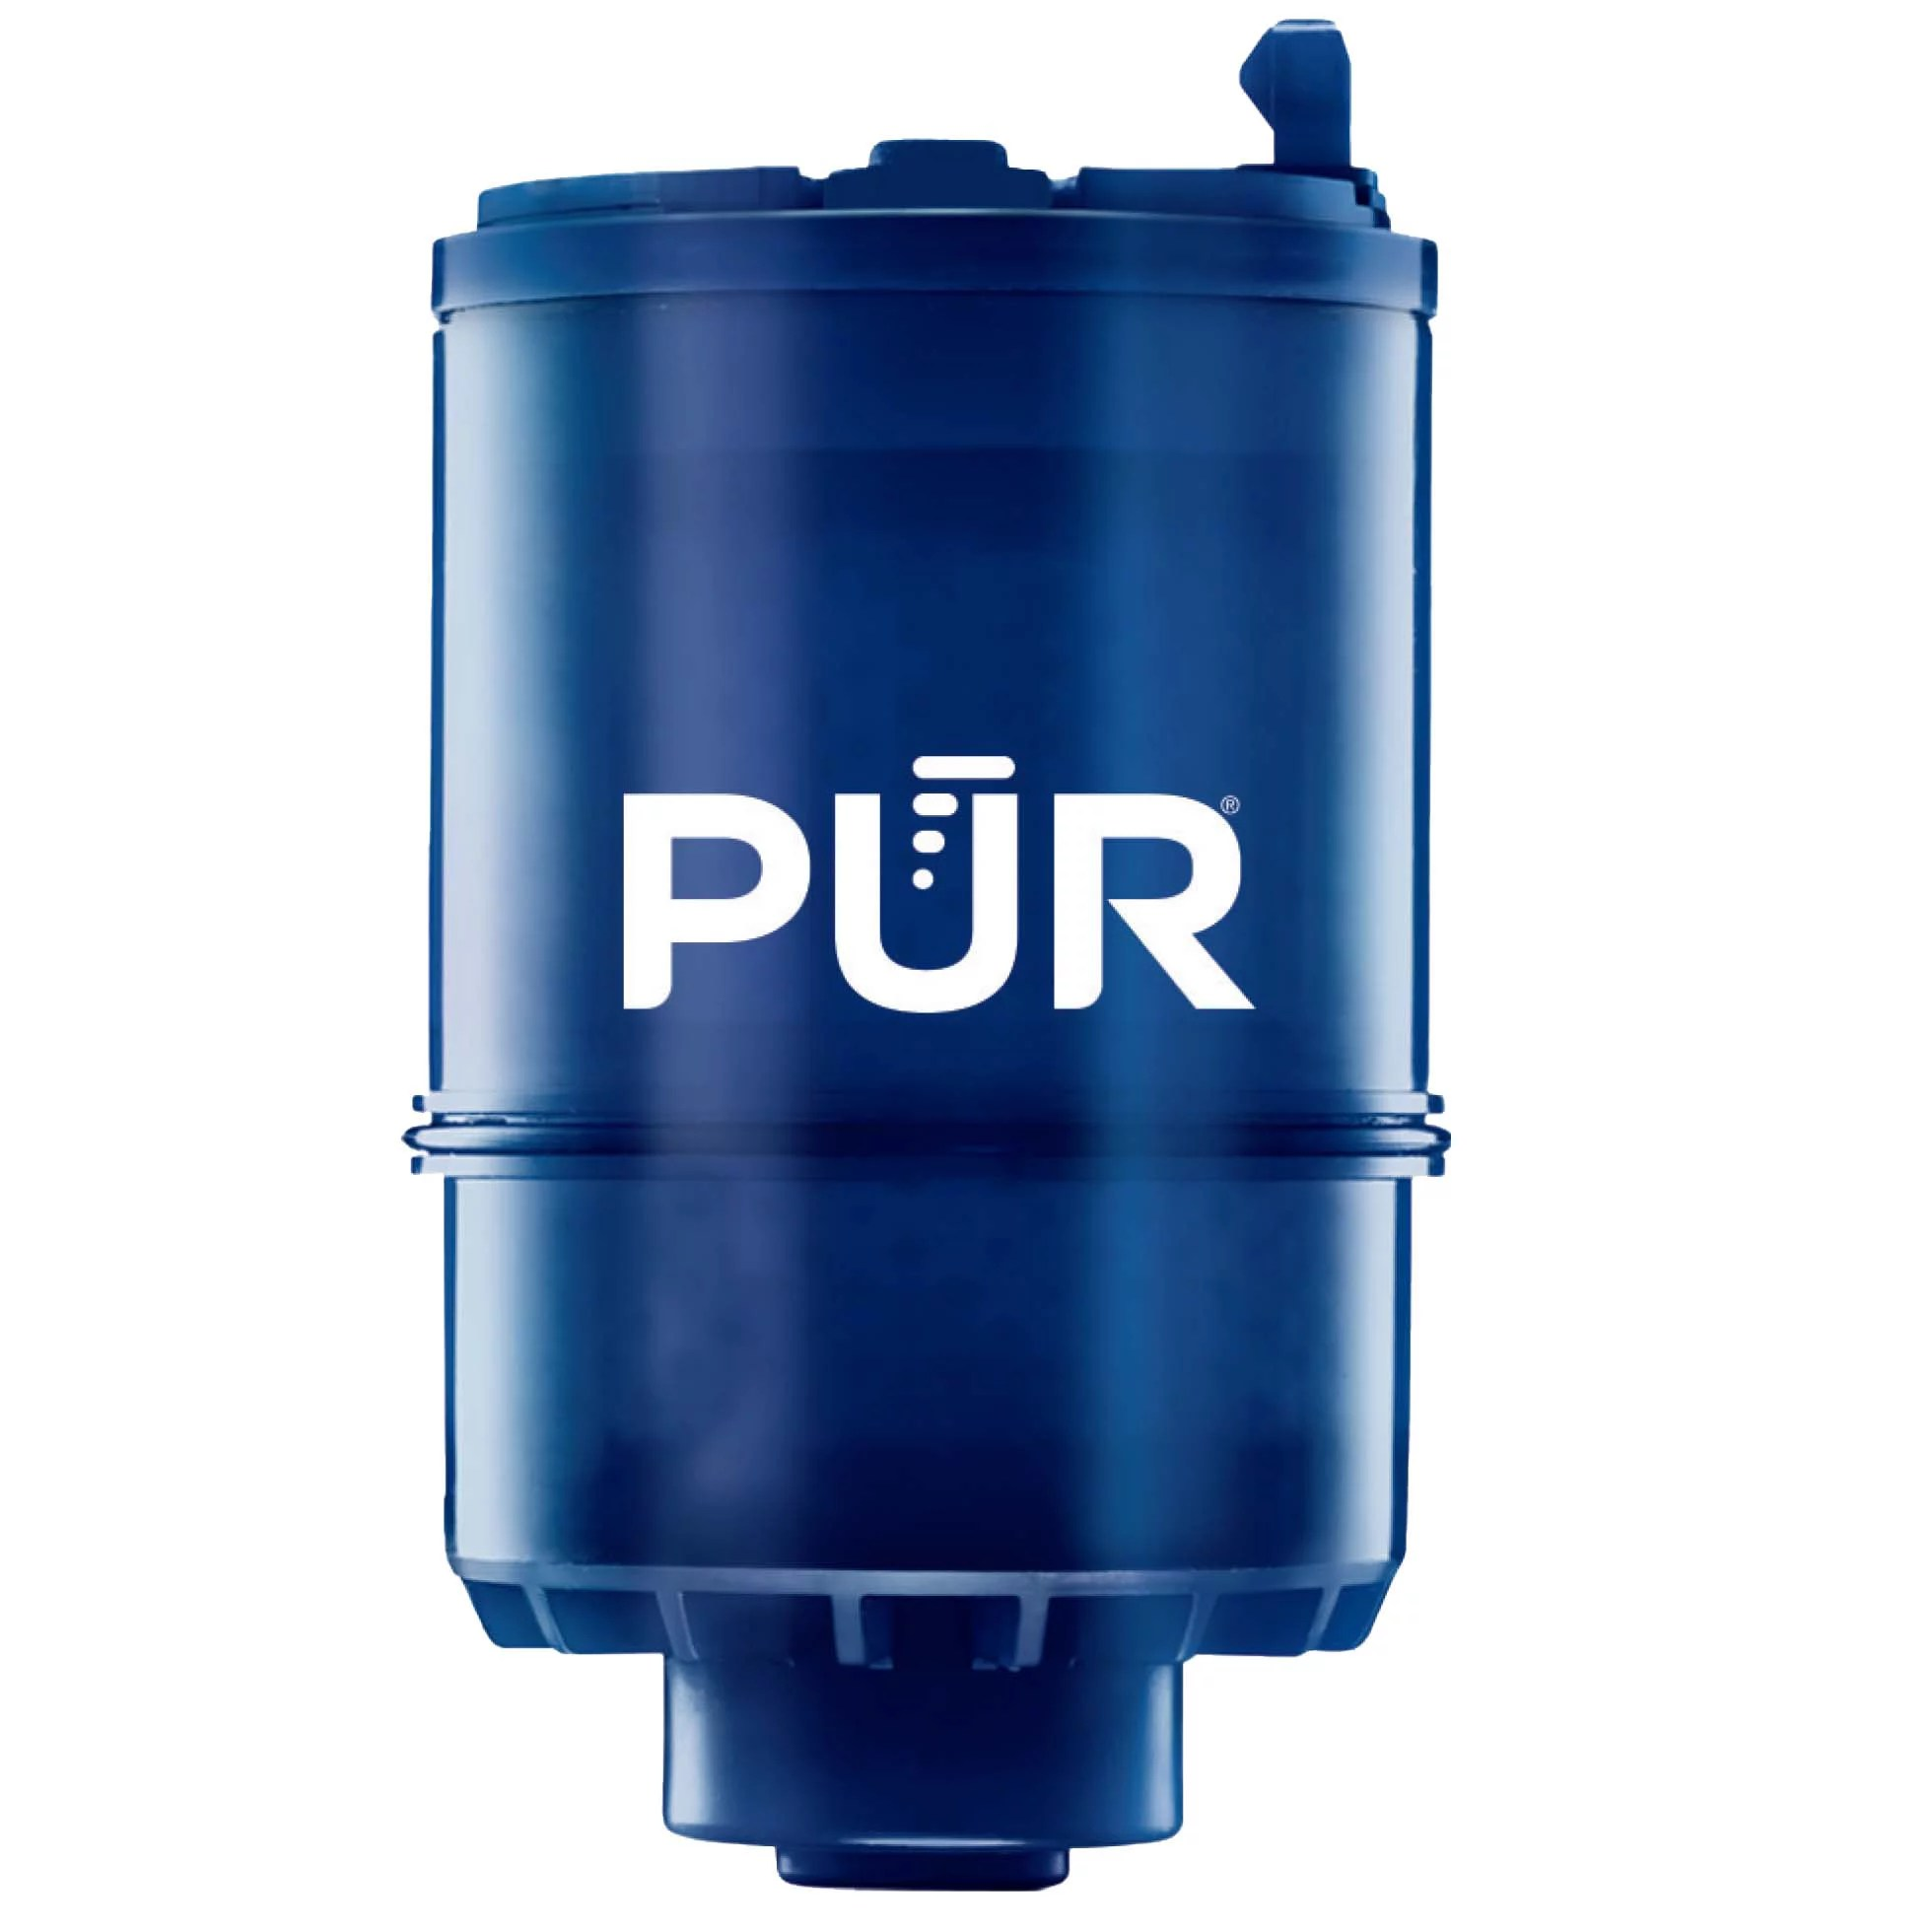 pur genuine mineralclear faucet water replacement filter rf99991 1 pack